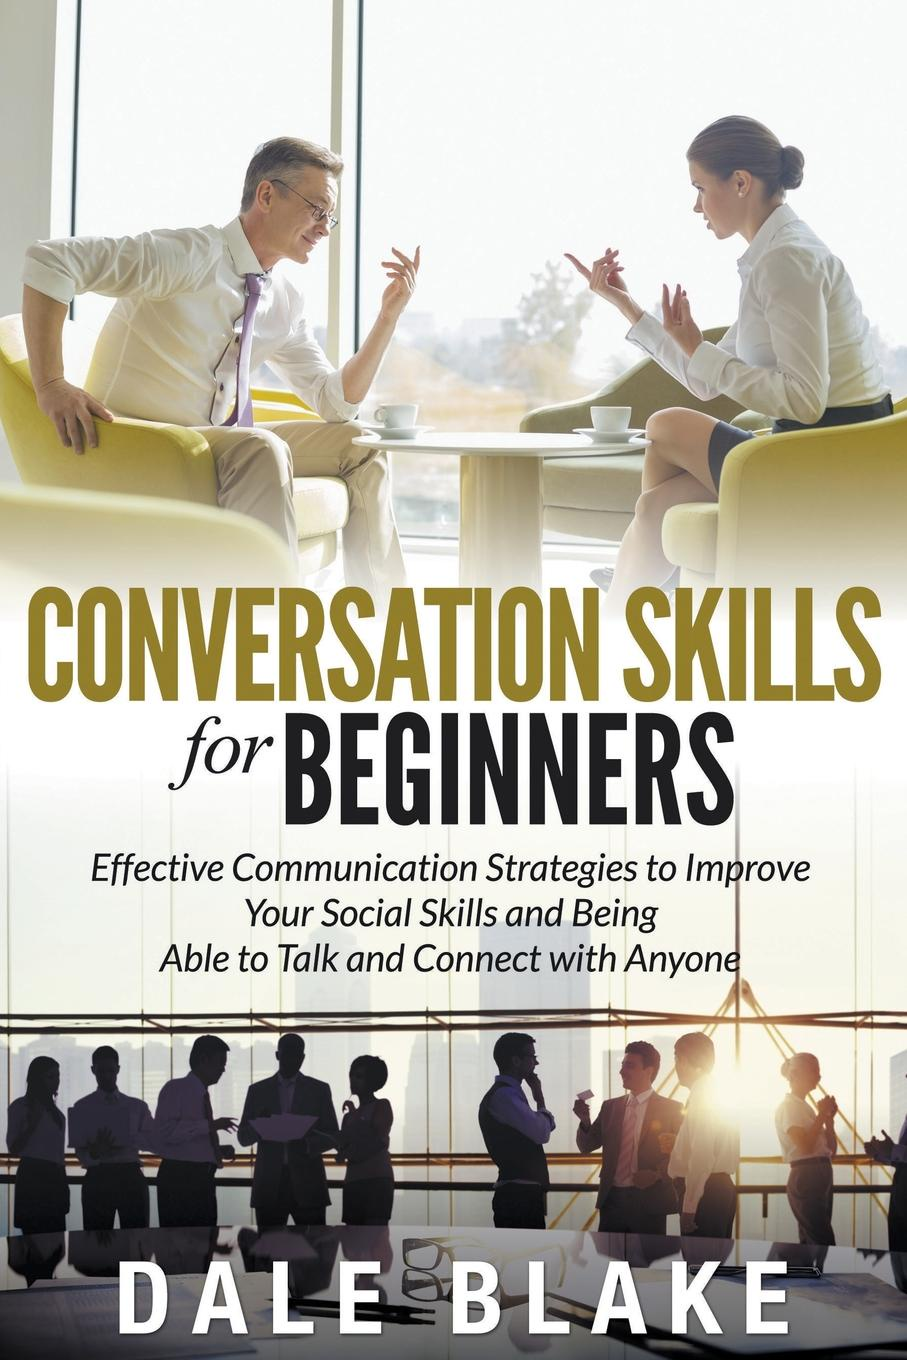 Conversation Skills For Beginners. Effective Communication Strategies to Improve Your Social Skills and Being Able to Talk and Connect with Anyone